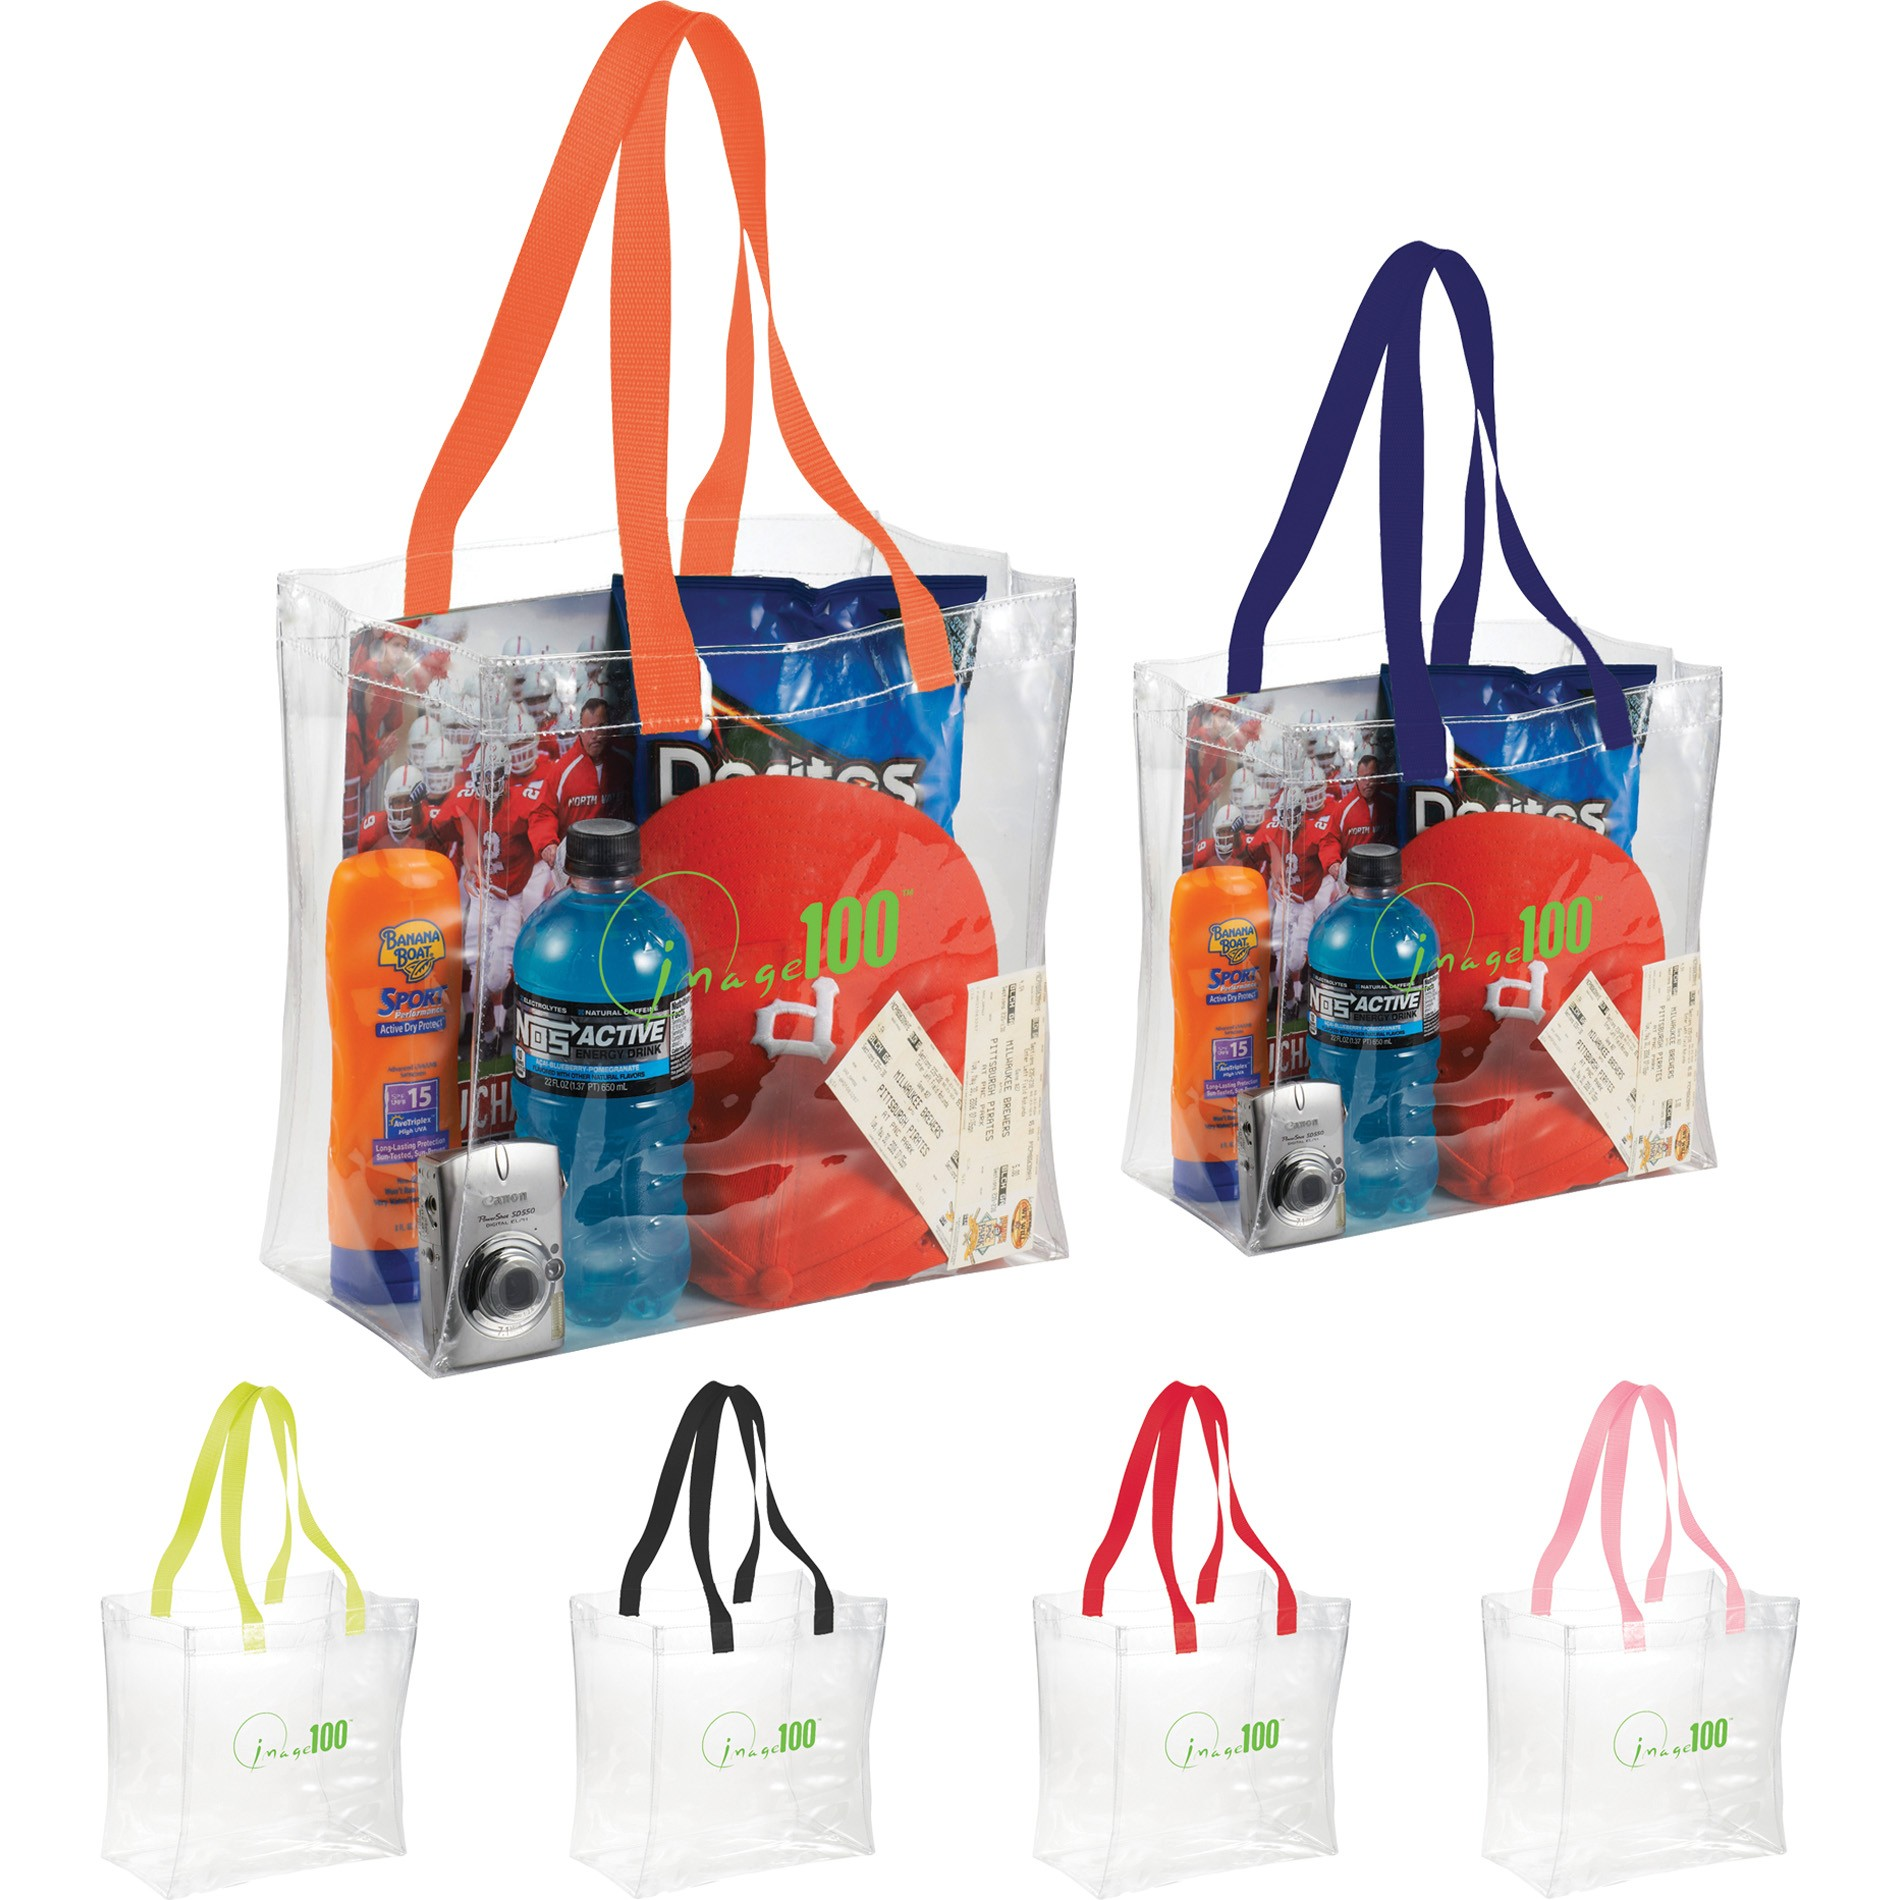 Printed Clear Tote Bag